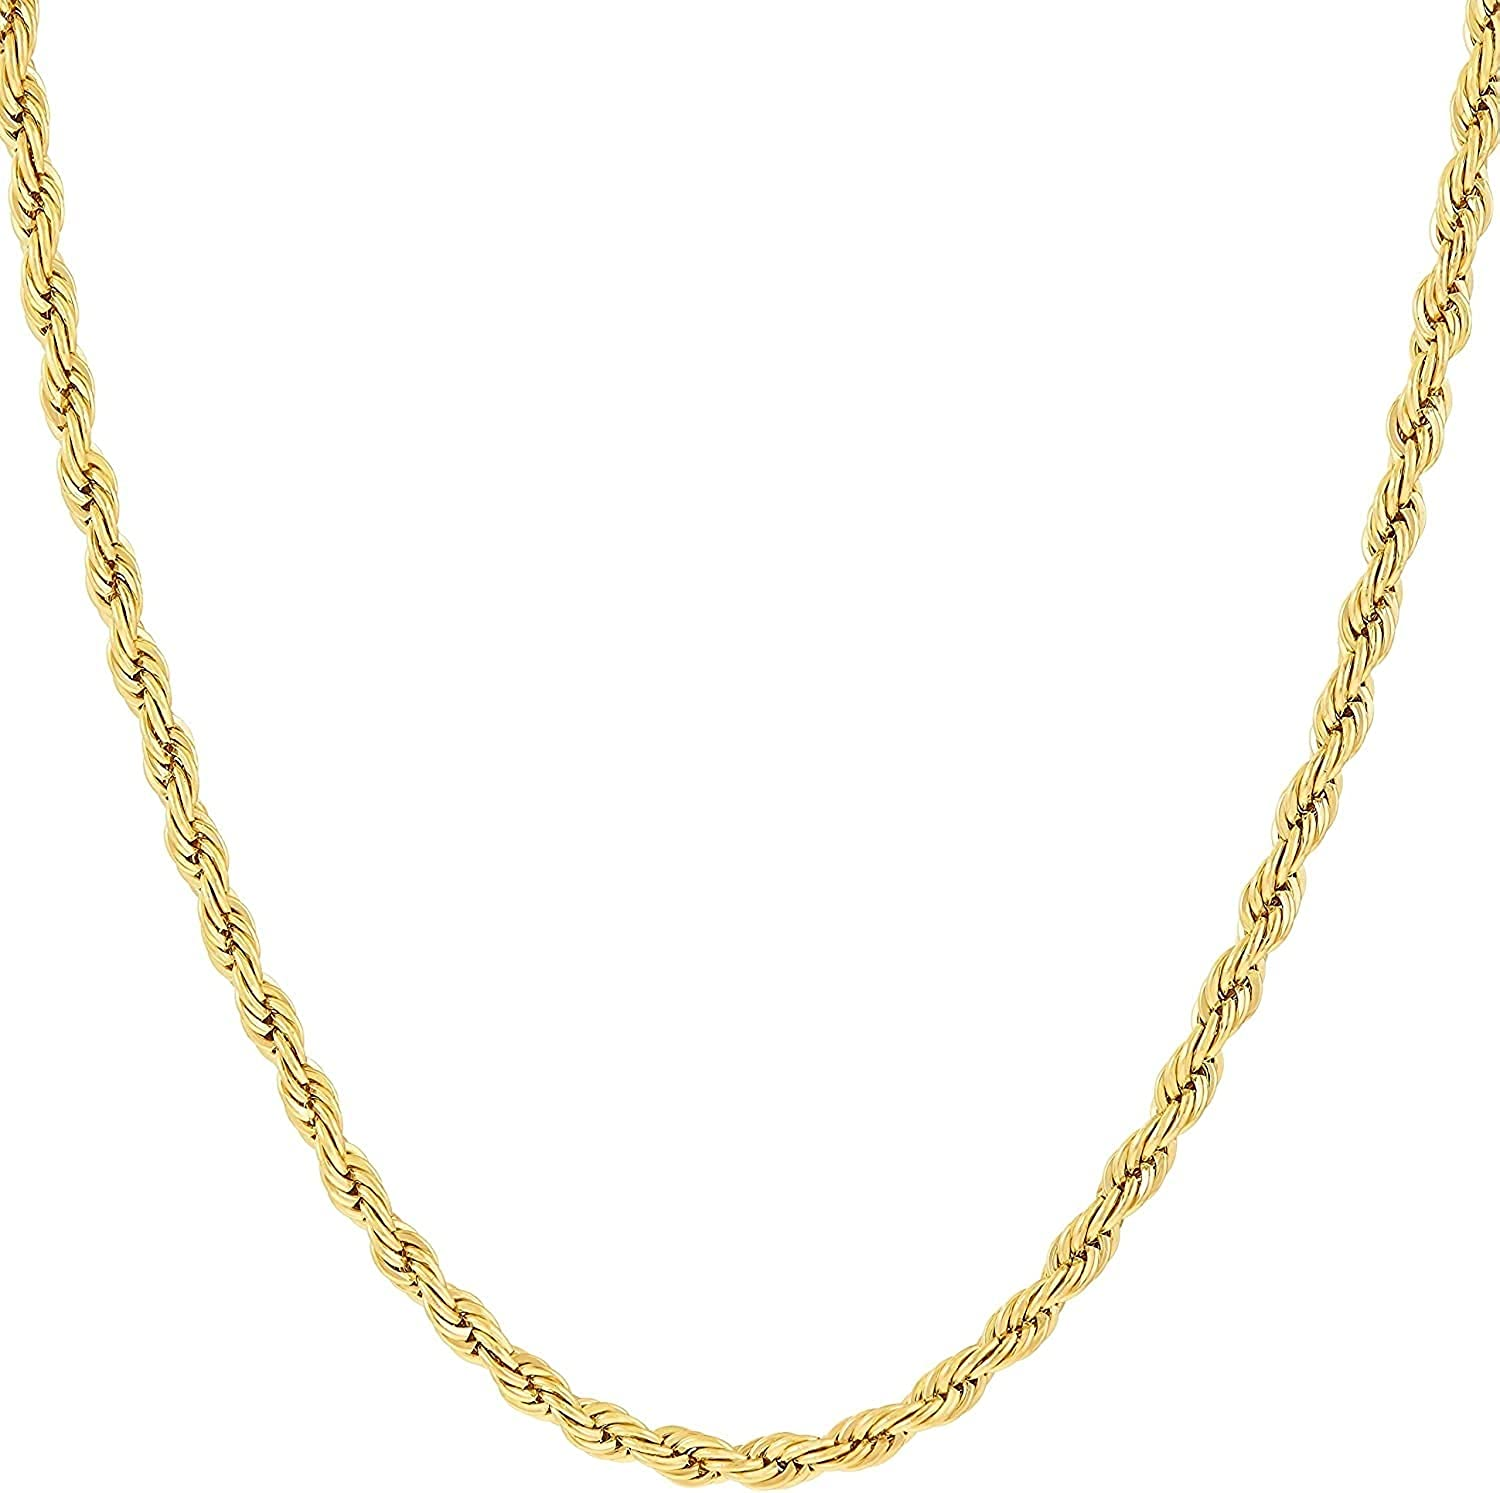 VESA JEWELS 10k Dainty Thin Yellow Gold Diamond Cut Rope Twisted Braided Chain Necklace 1.8MM Pure 10 Karat Gold Necklace, 16''-30'' Men Women Unisex Teens 10k Rope Chain Necklace